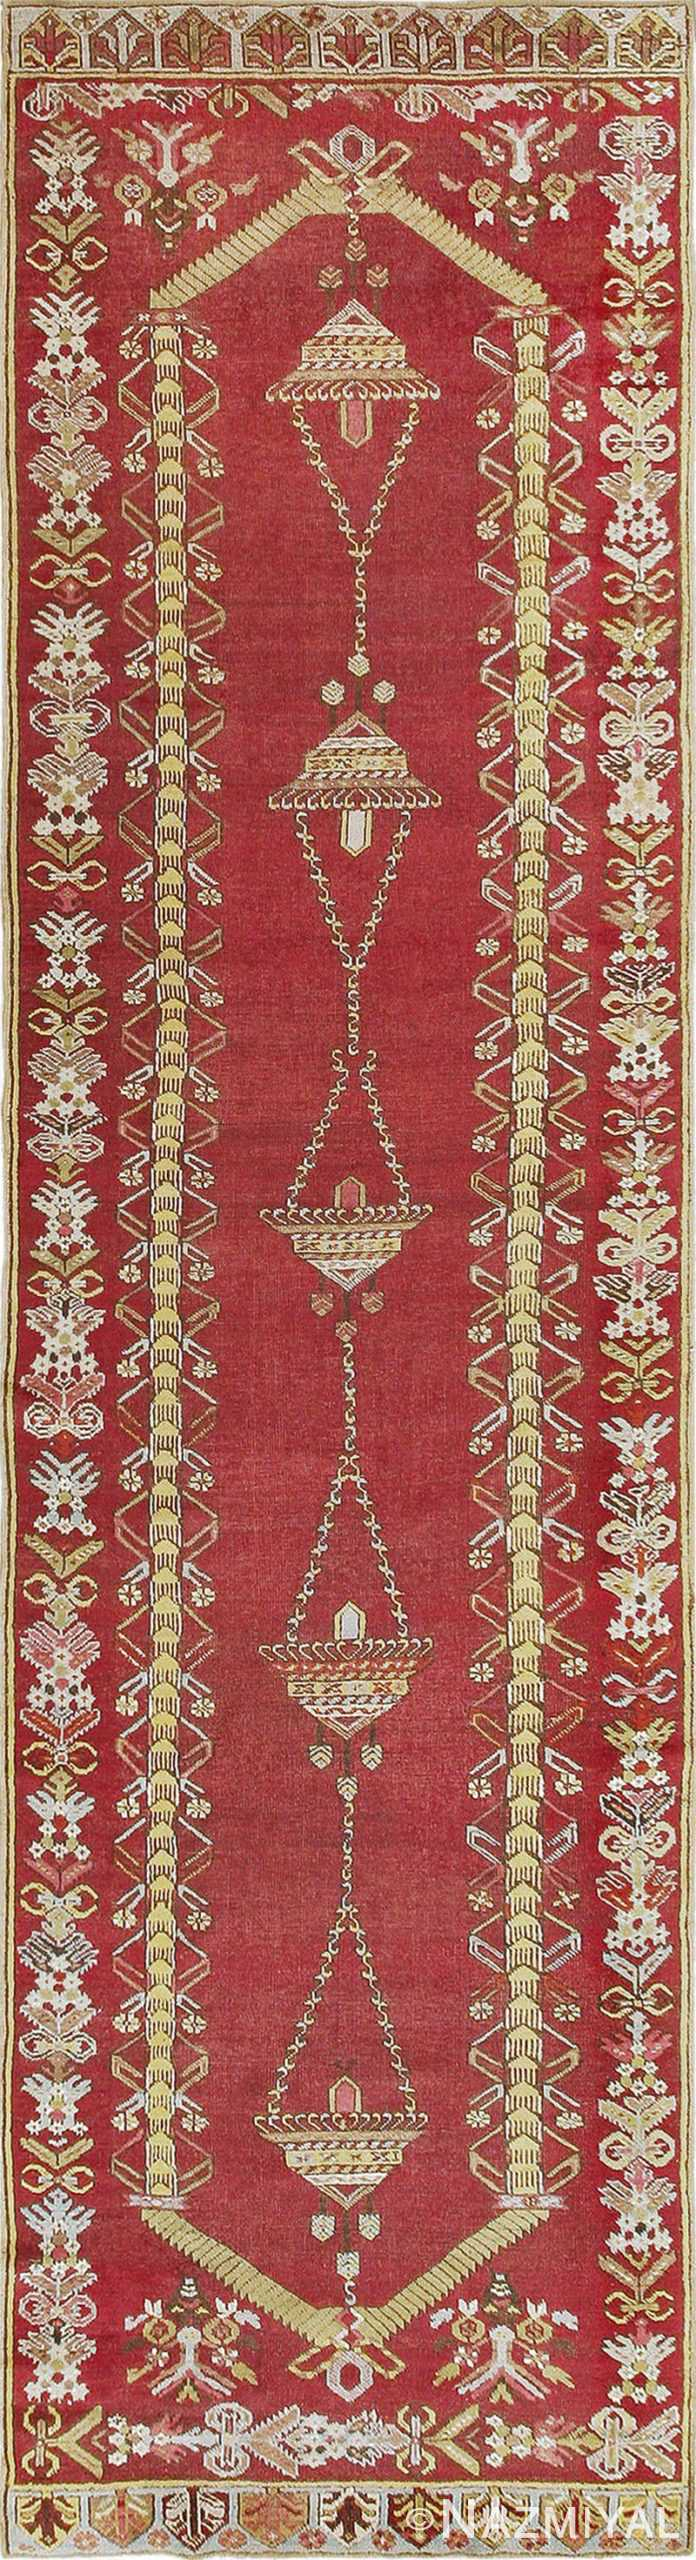 Antique Kirshehir Turkish Rug 2389 Nazmiyal